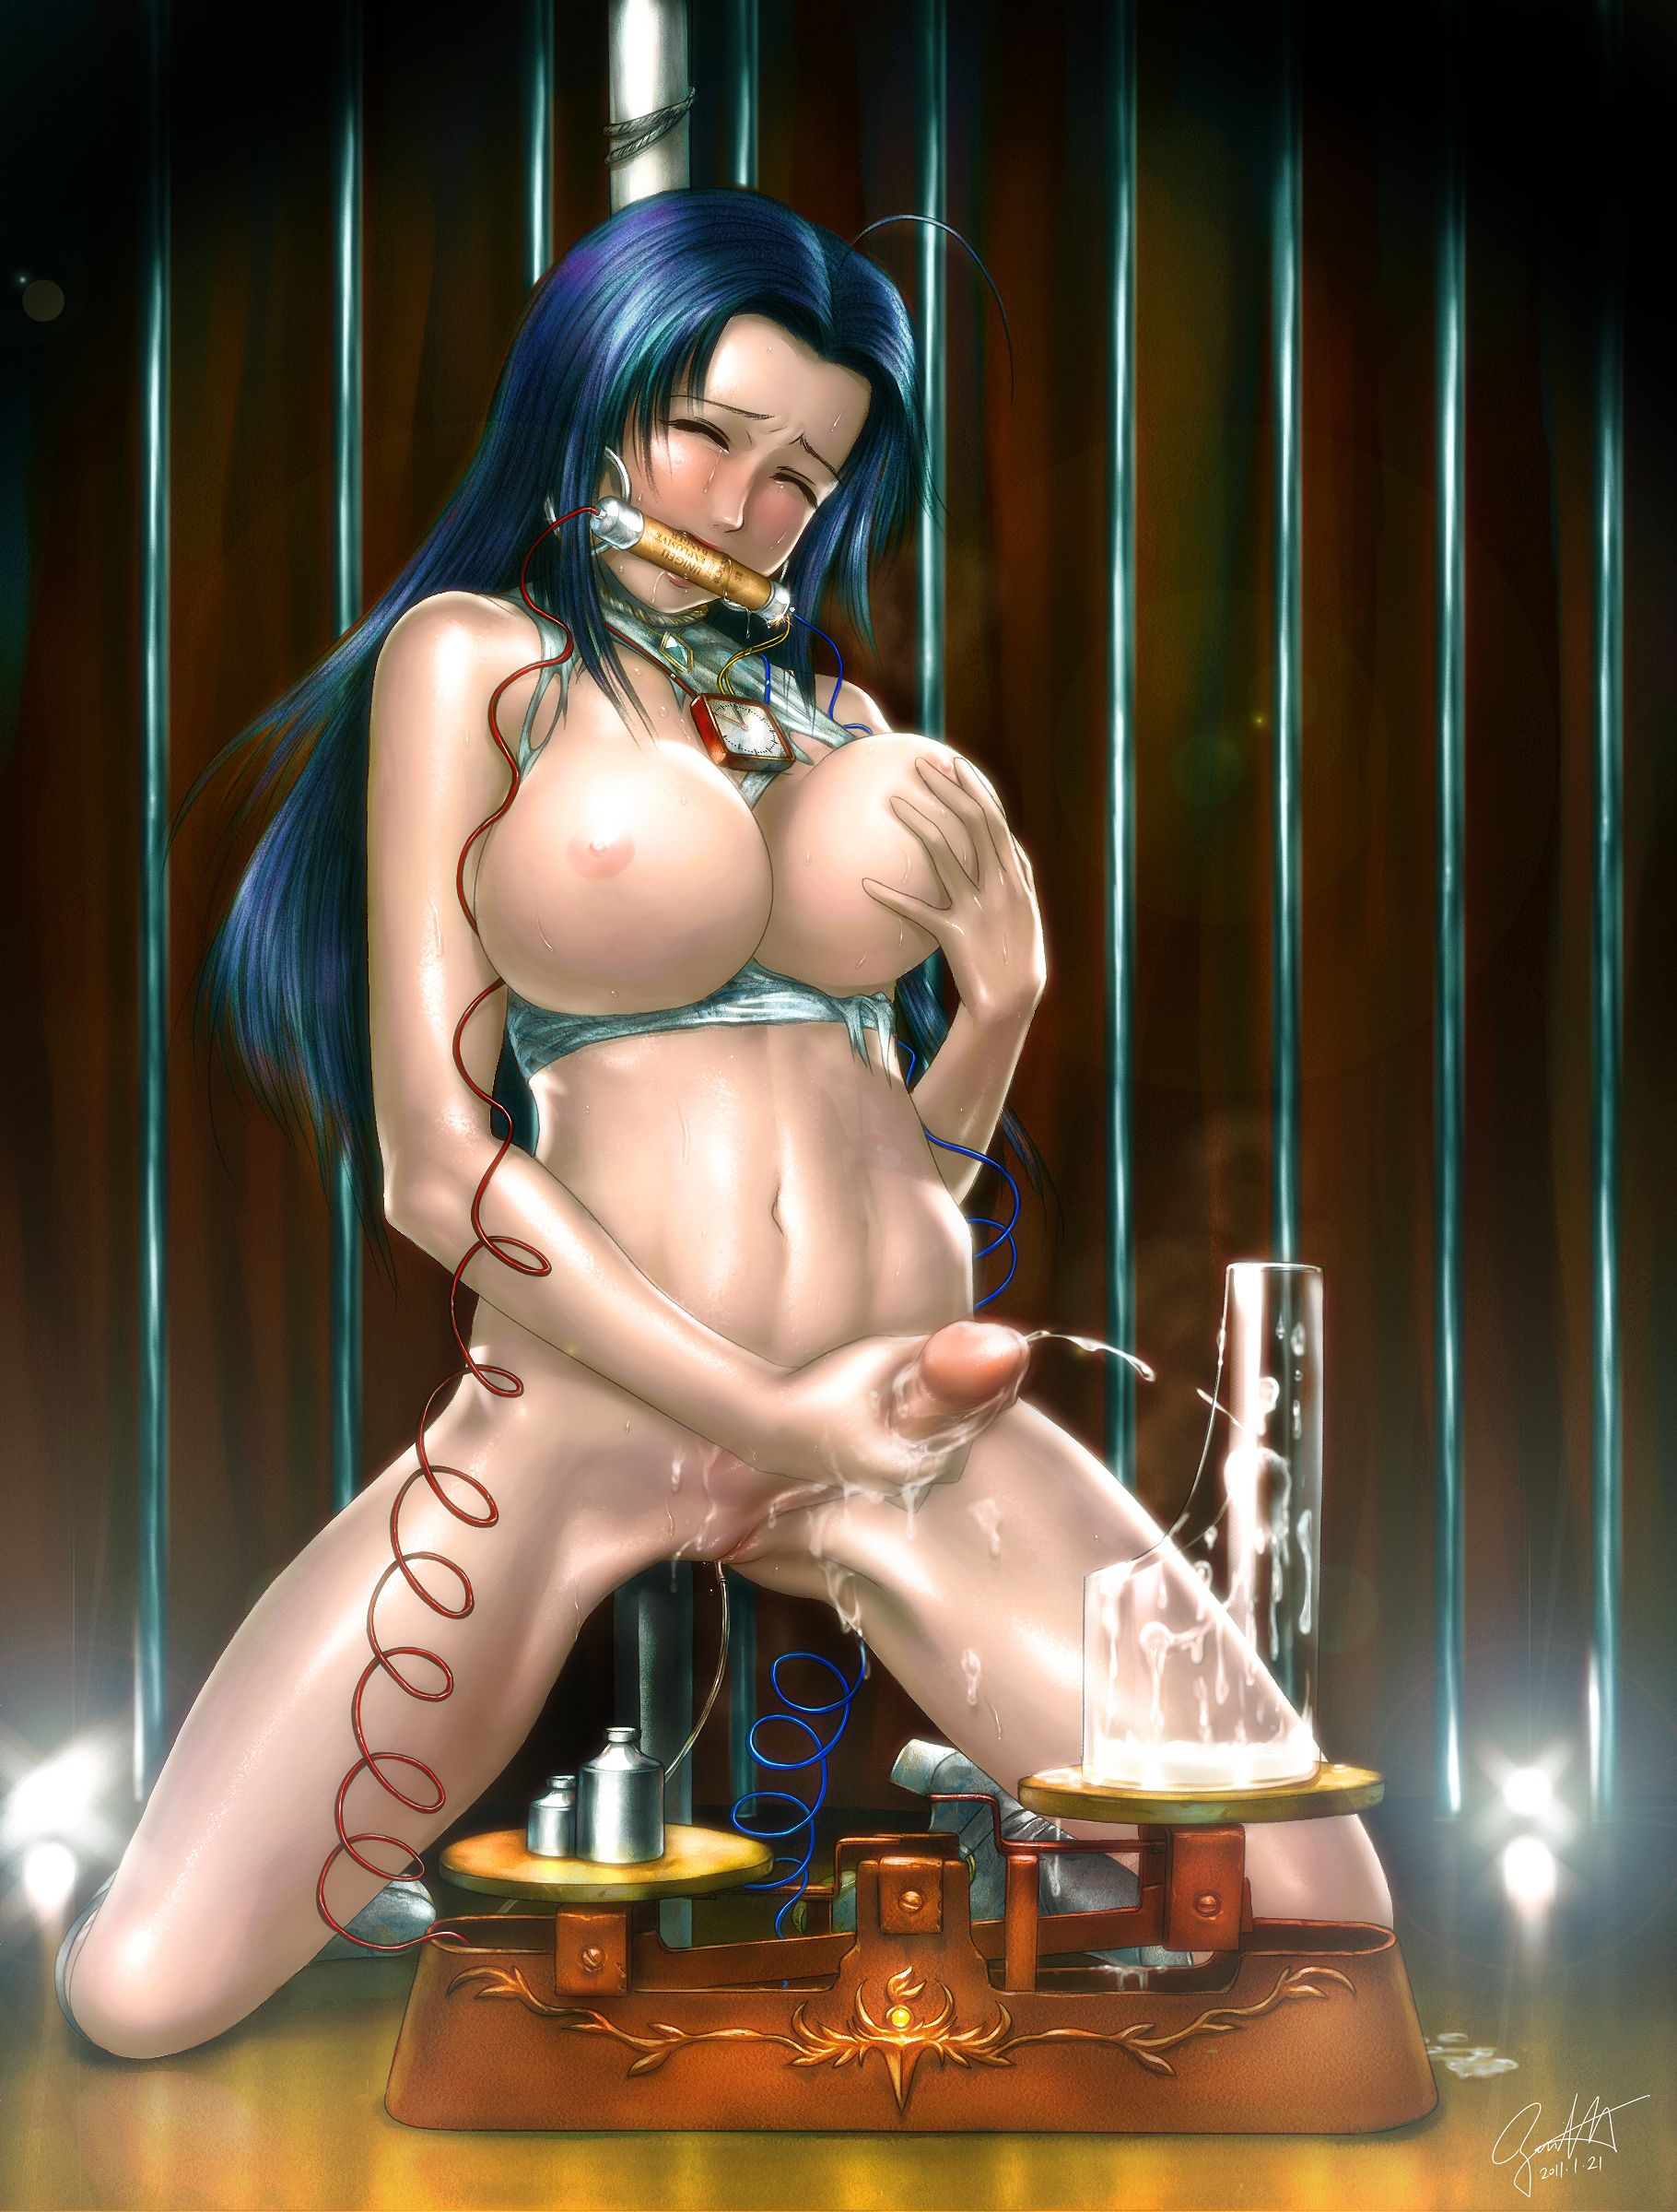 S. Zenith Lee - Artwork collection / Сборник работ [Ptcen] [JPG,PNG] Hentai ART